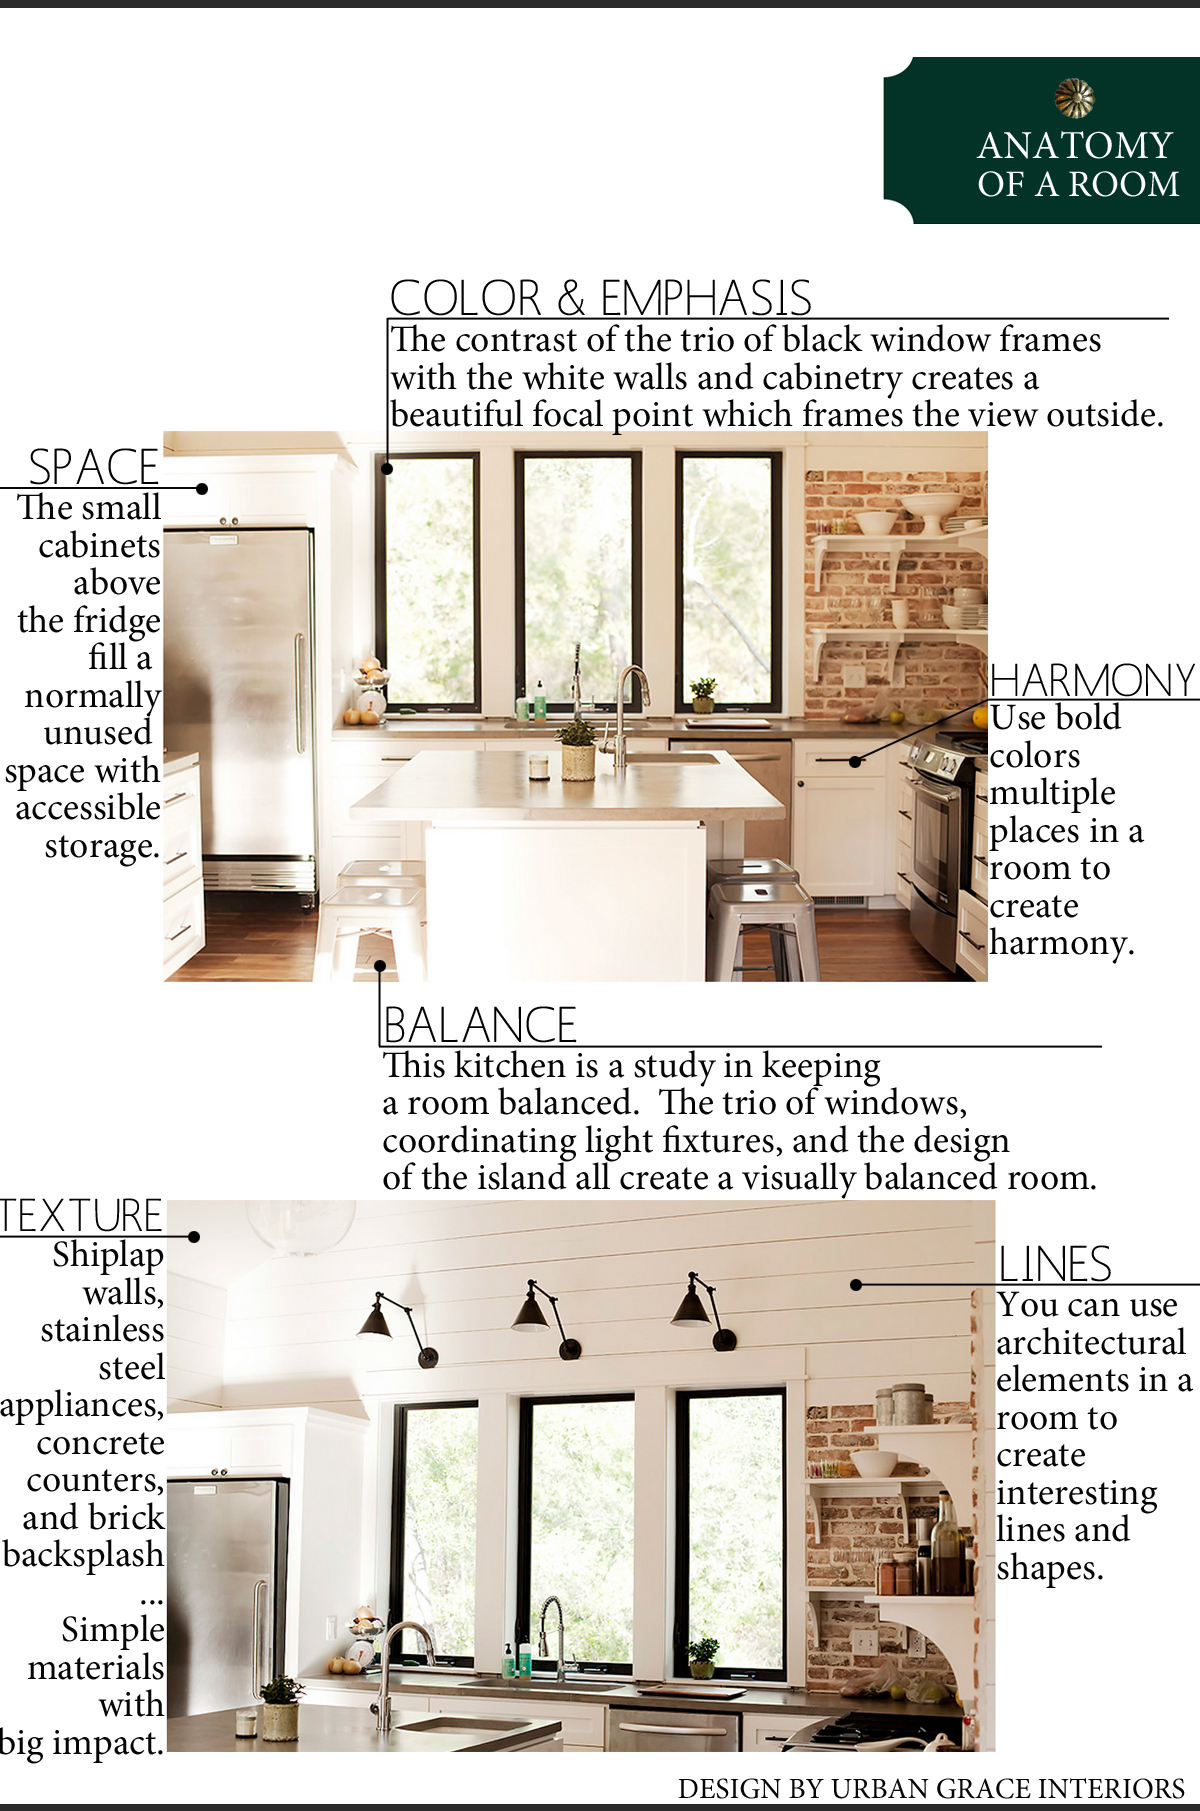 Anatomy of a Room: An Urban Grace Kitchen | The Anatomy of Design